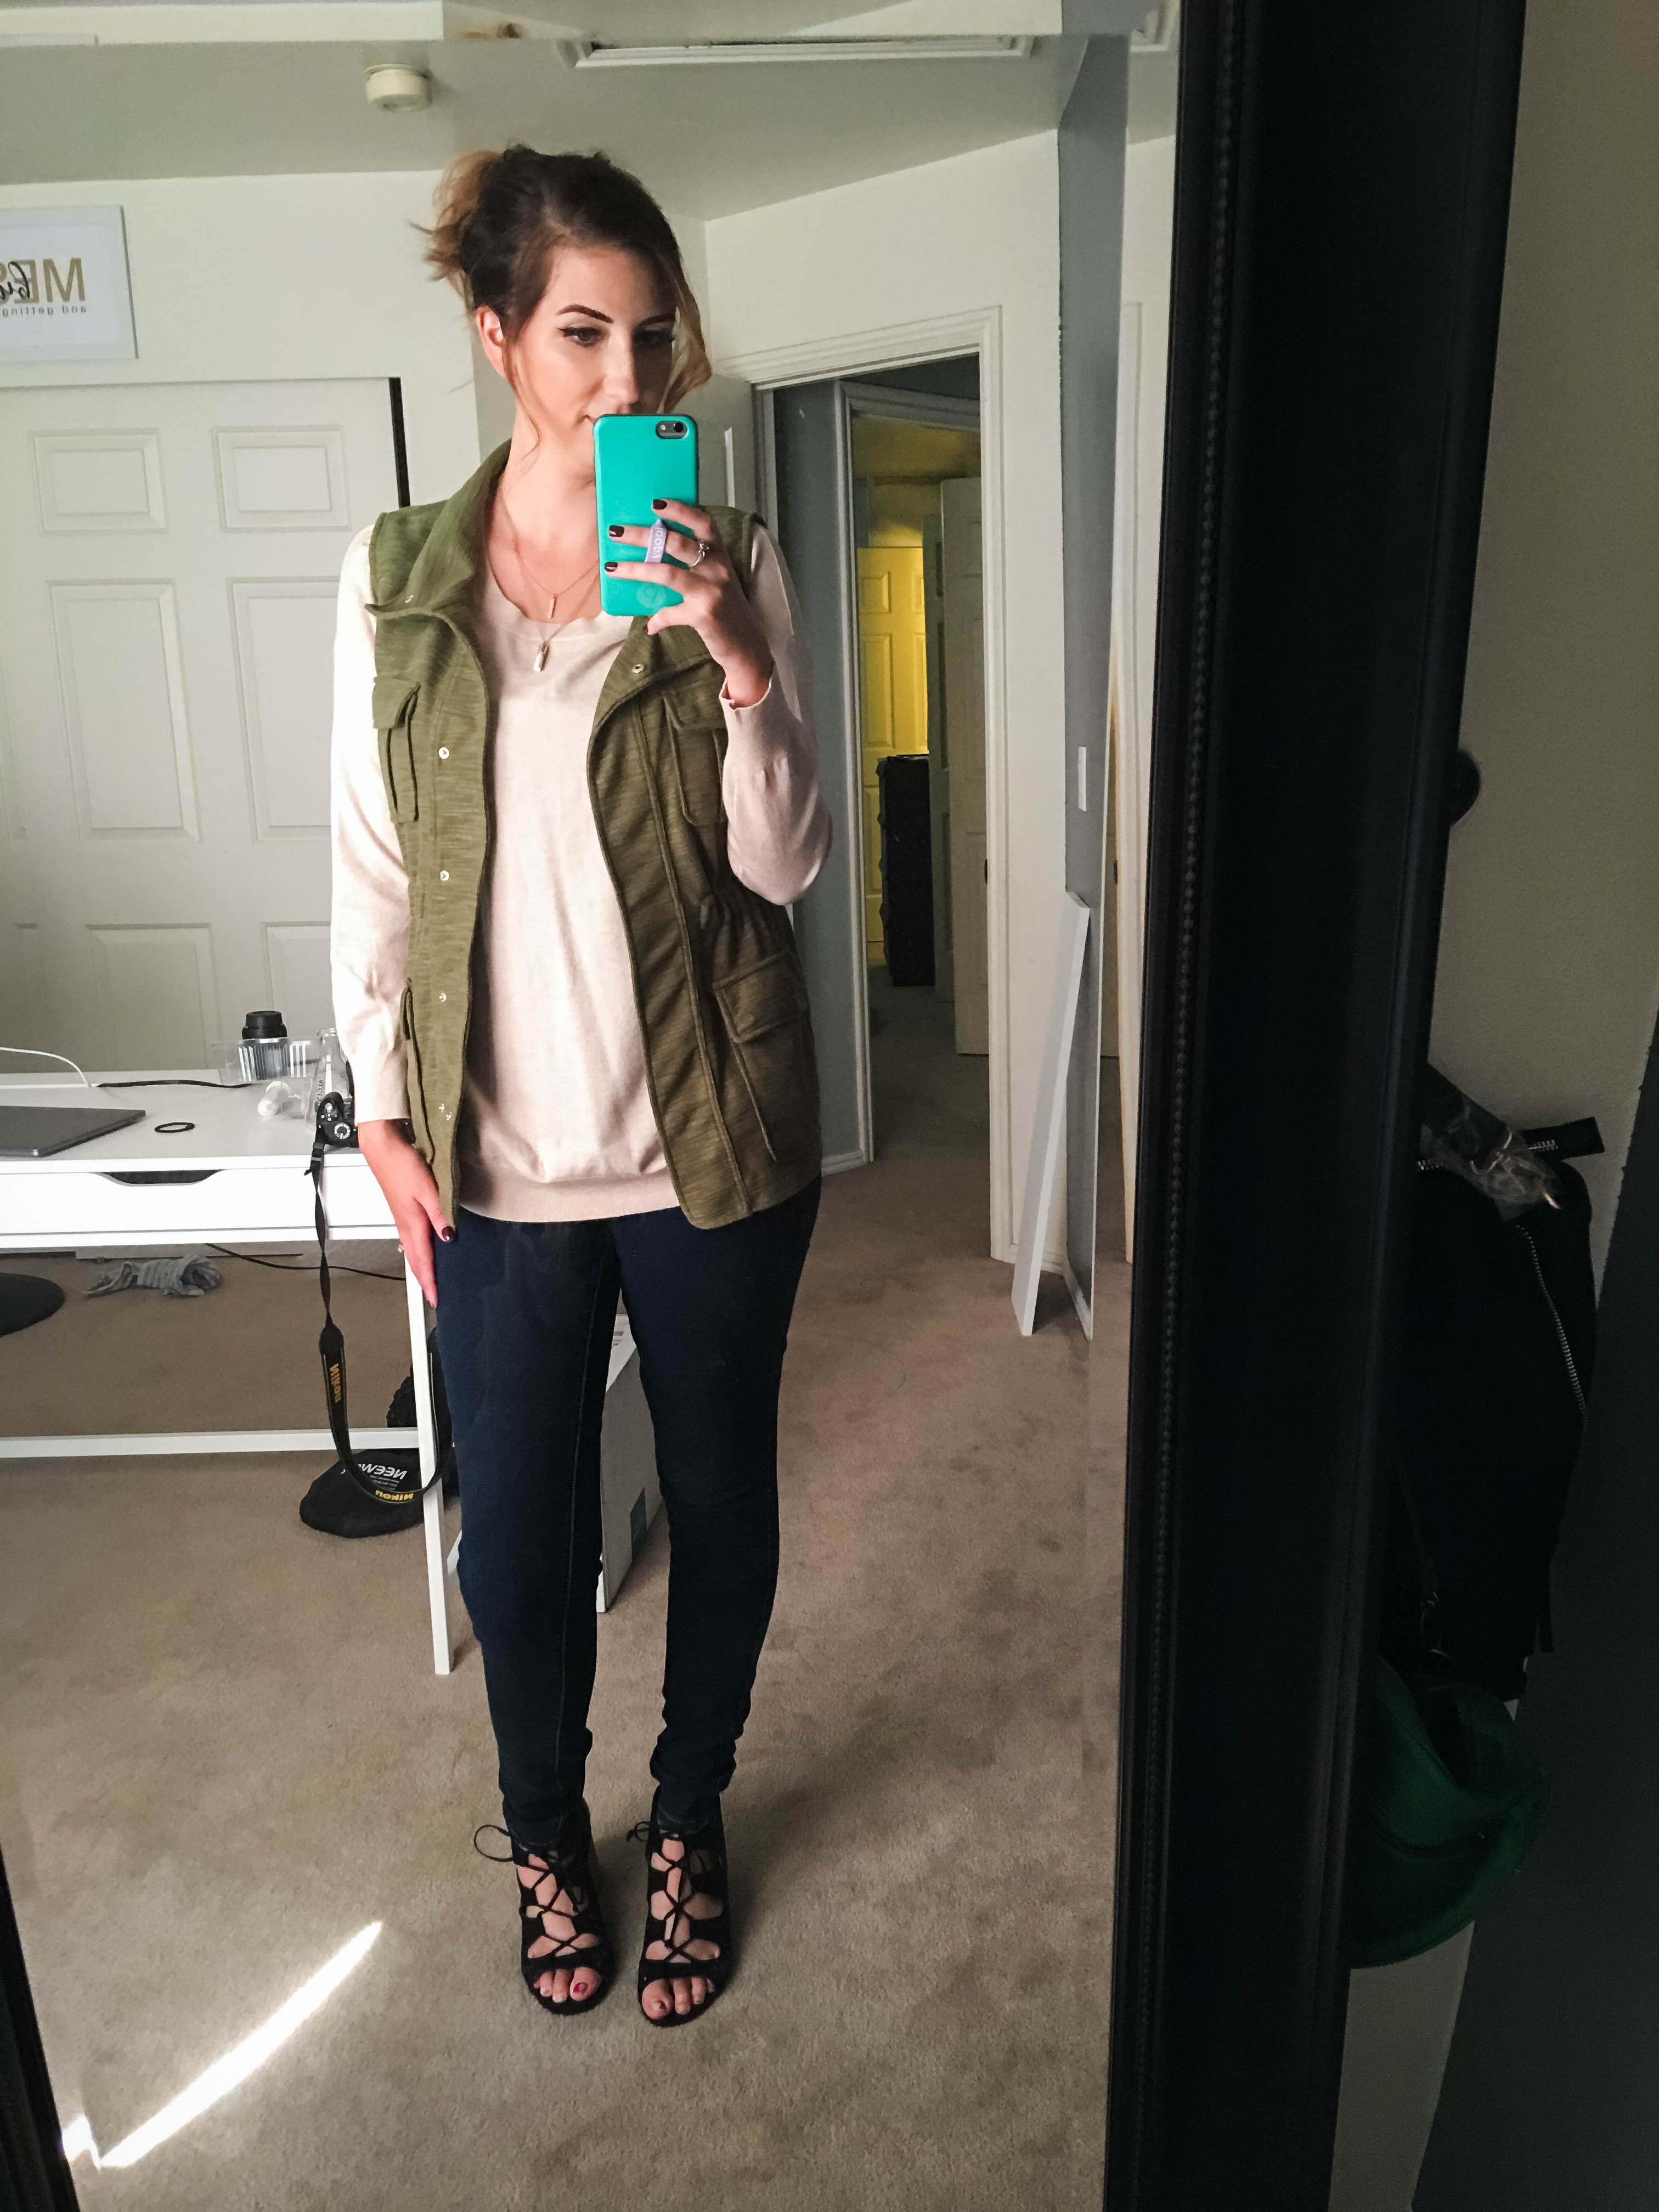 Green Utility Vest for Fall Outfit - Stitch Fix Reveal // Hey There, Chelsie